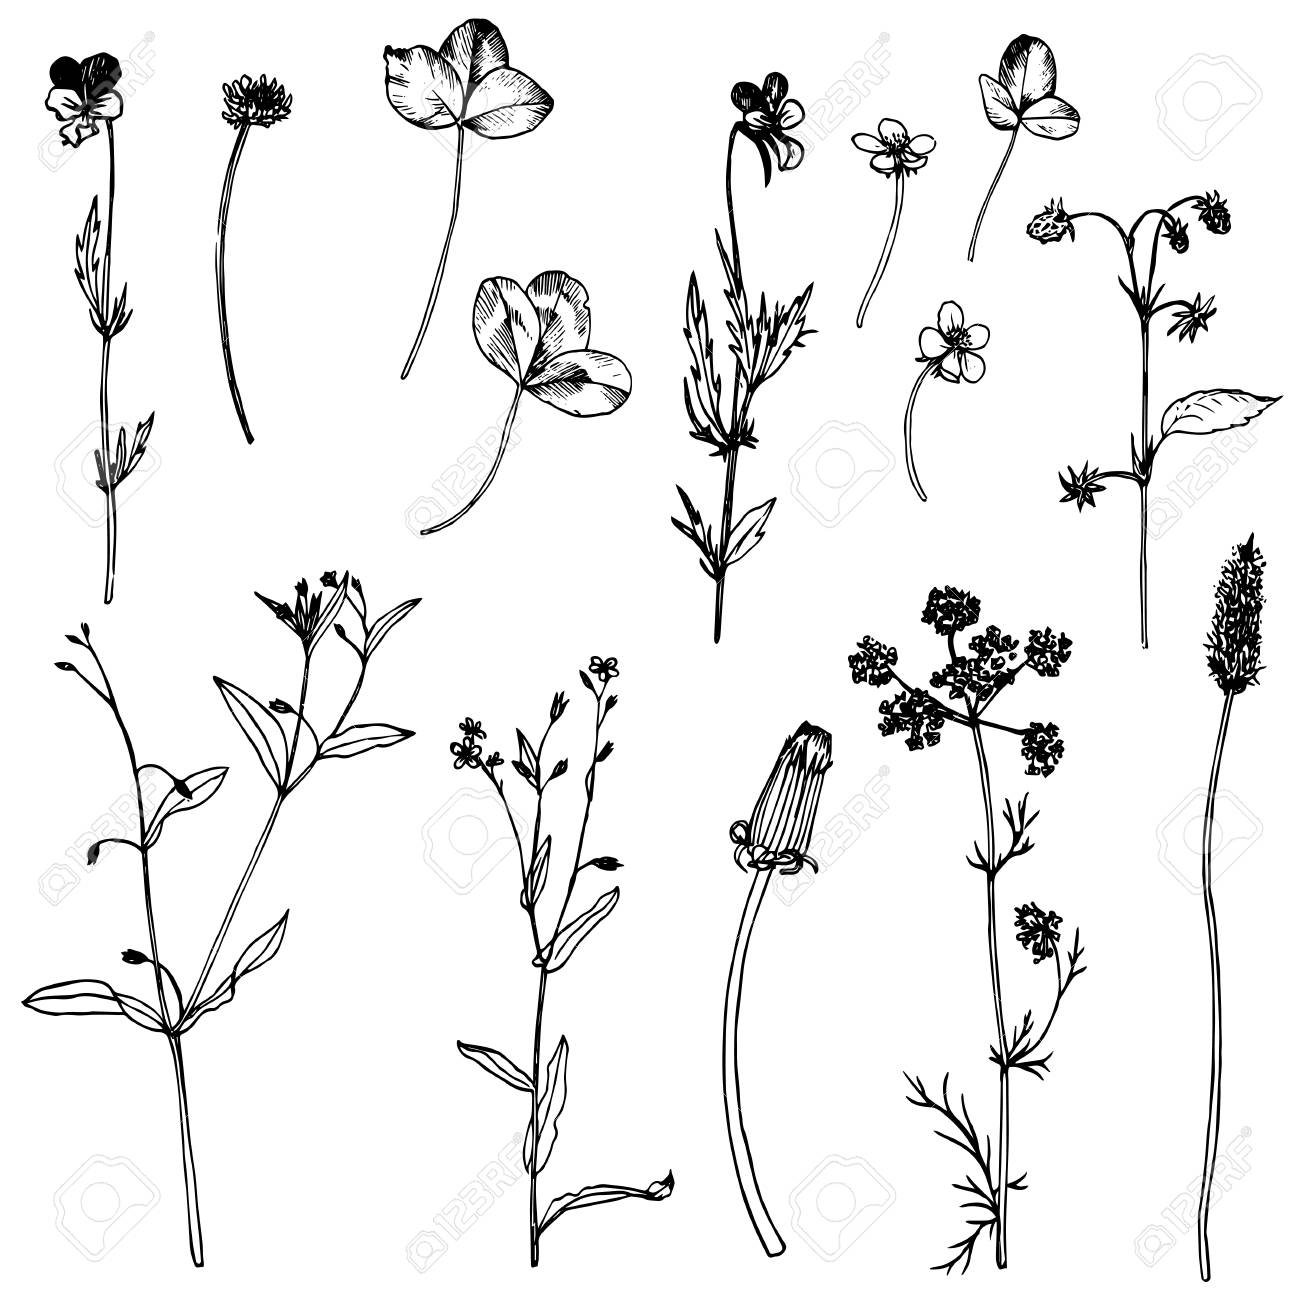 How To Draw A Flower With These Easy Step By Step